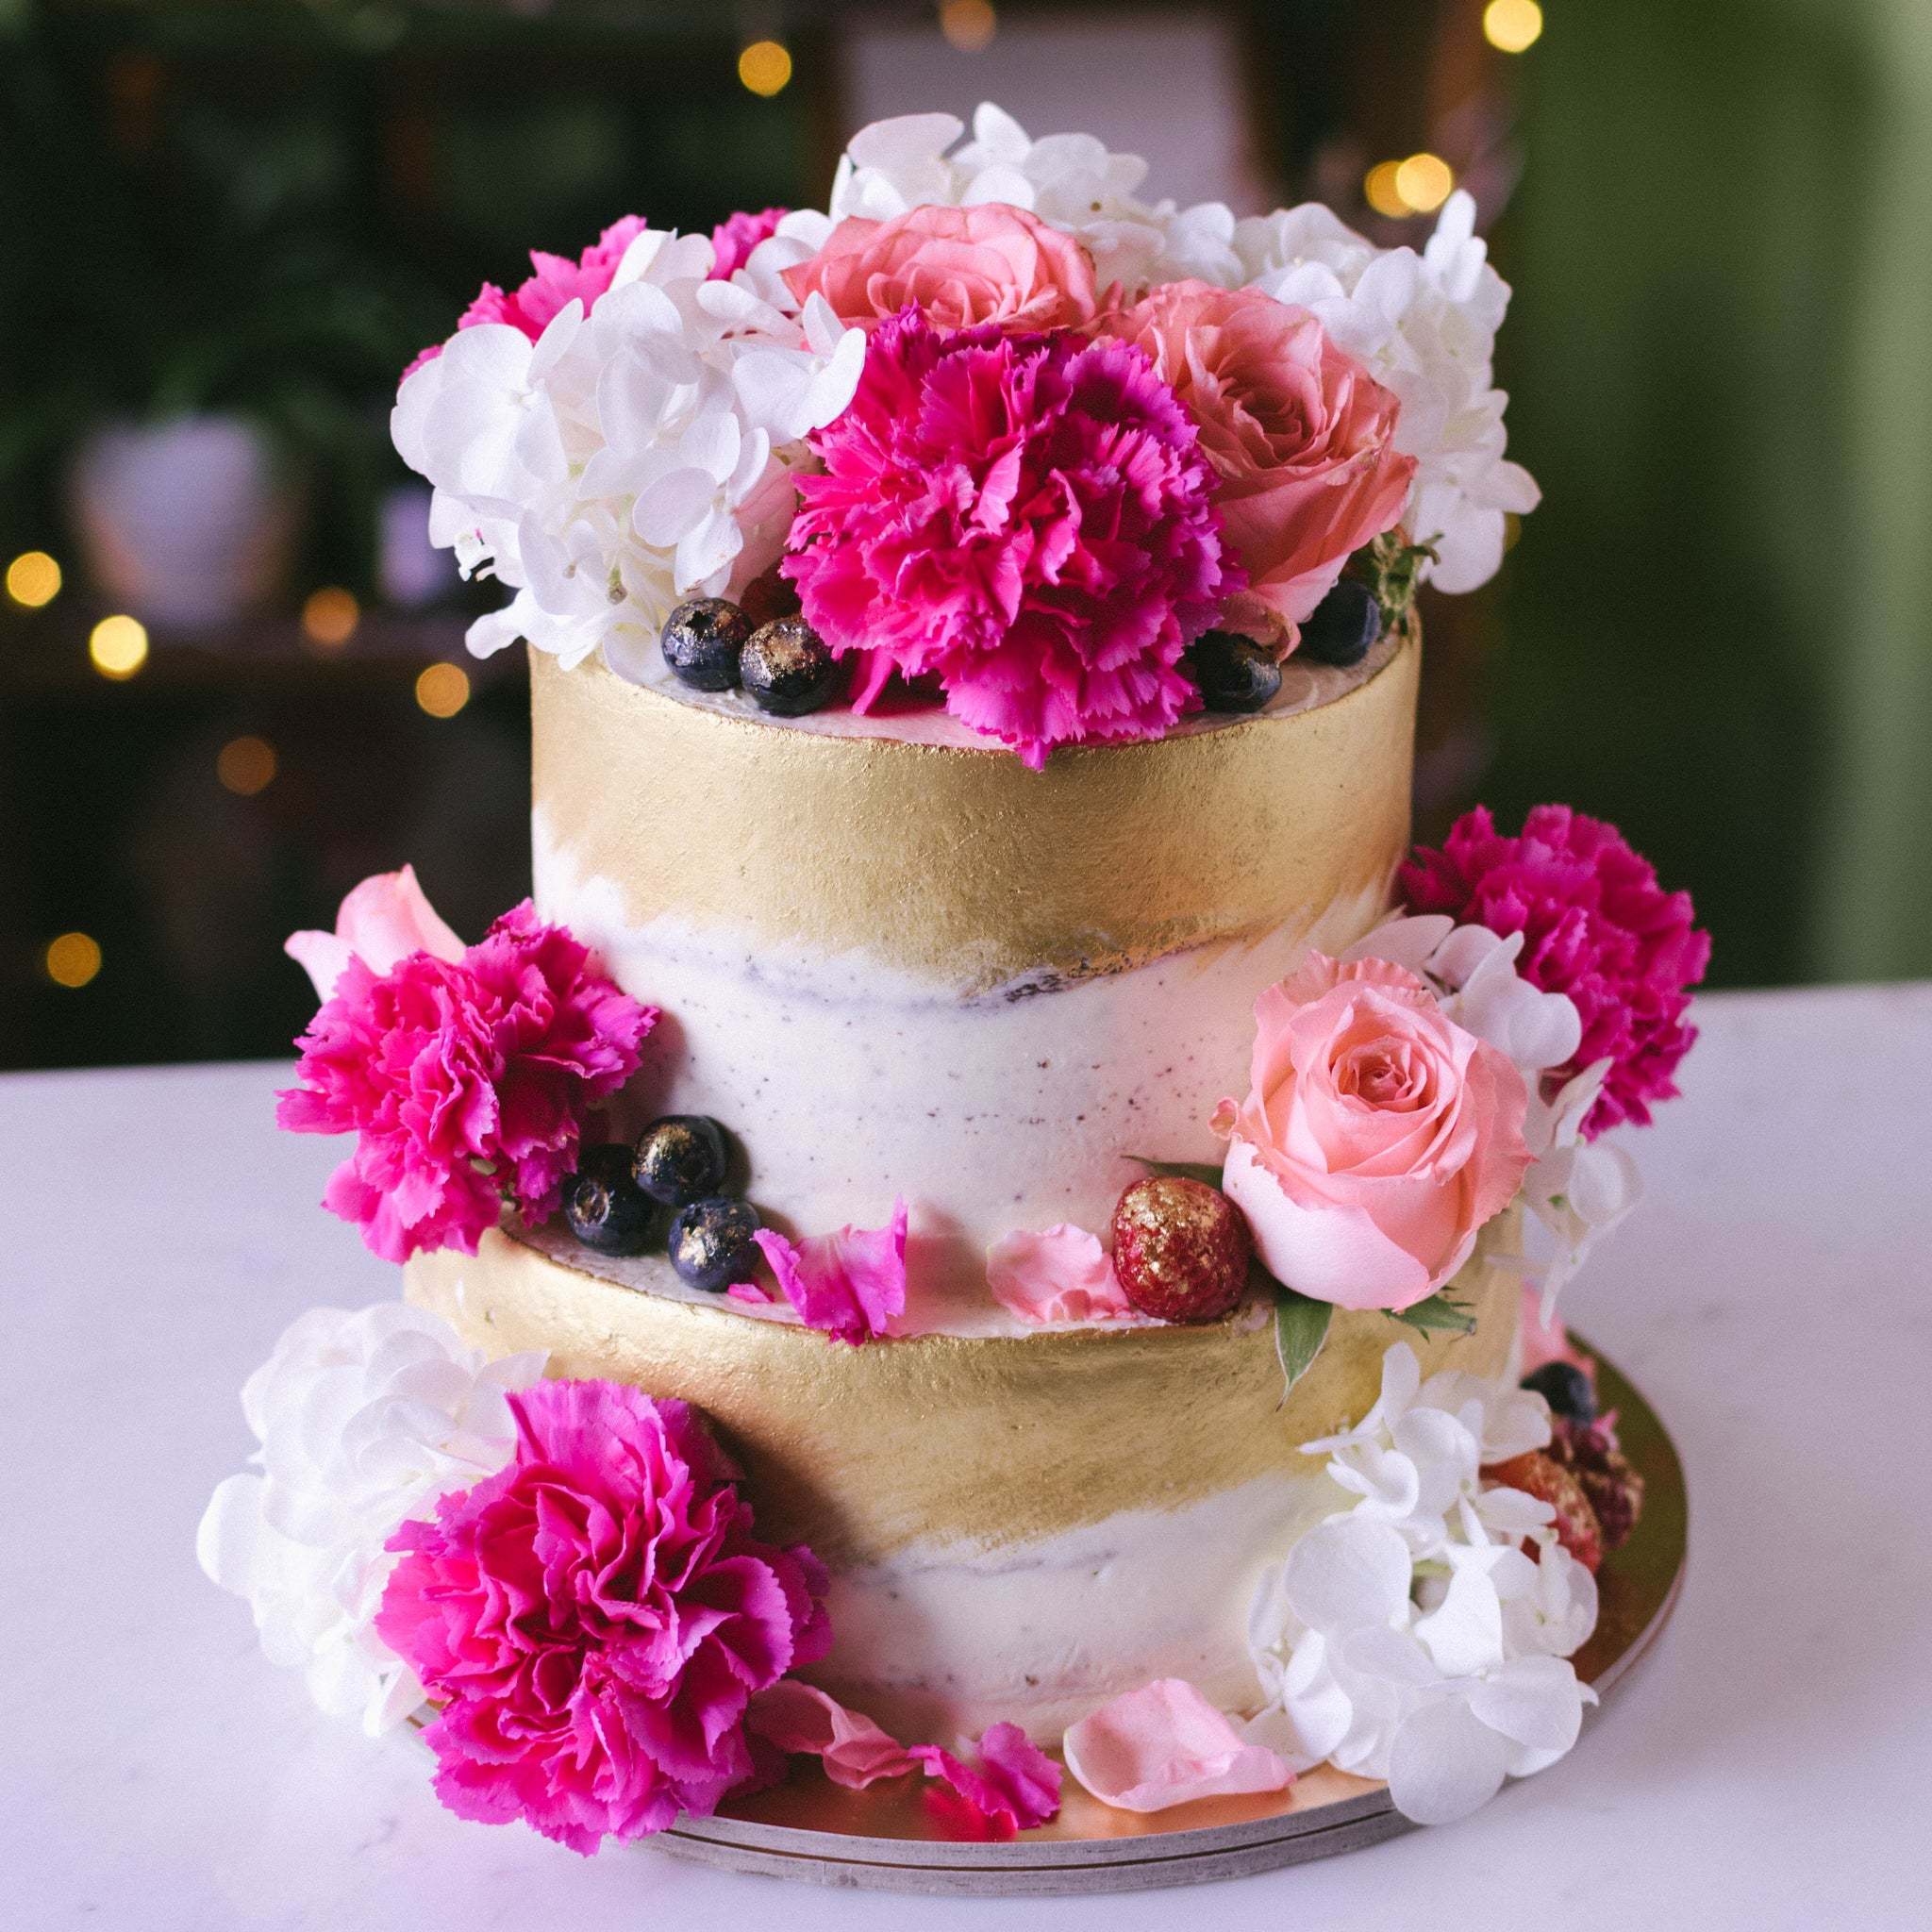 Two Tier Rustic Gold and Fresh Florals Cake - Custom Bakes by Edith Patisserie